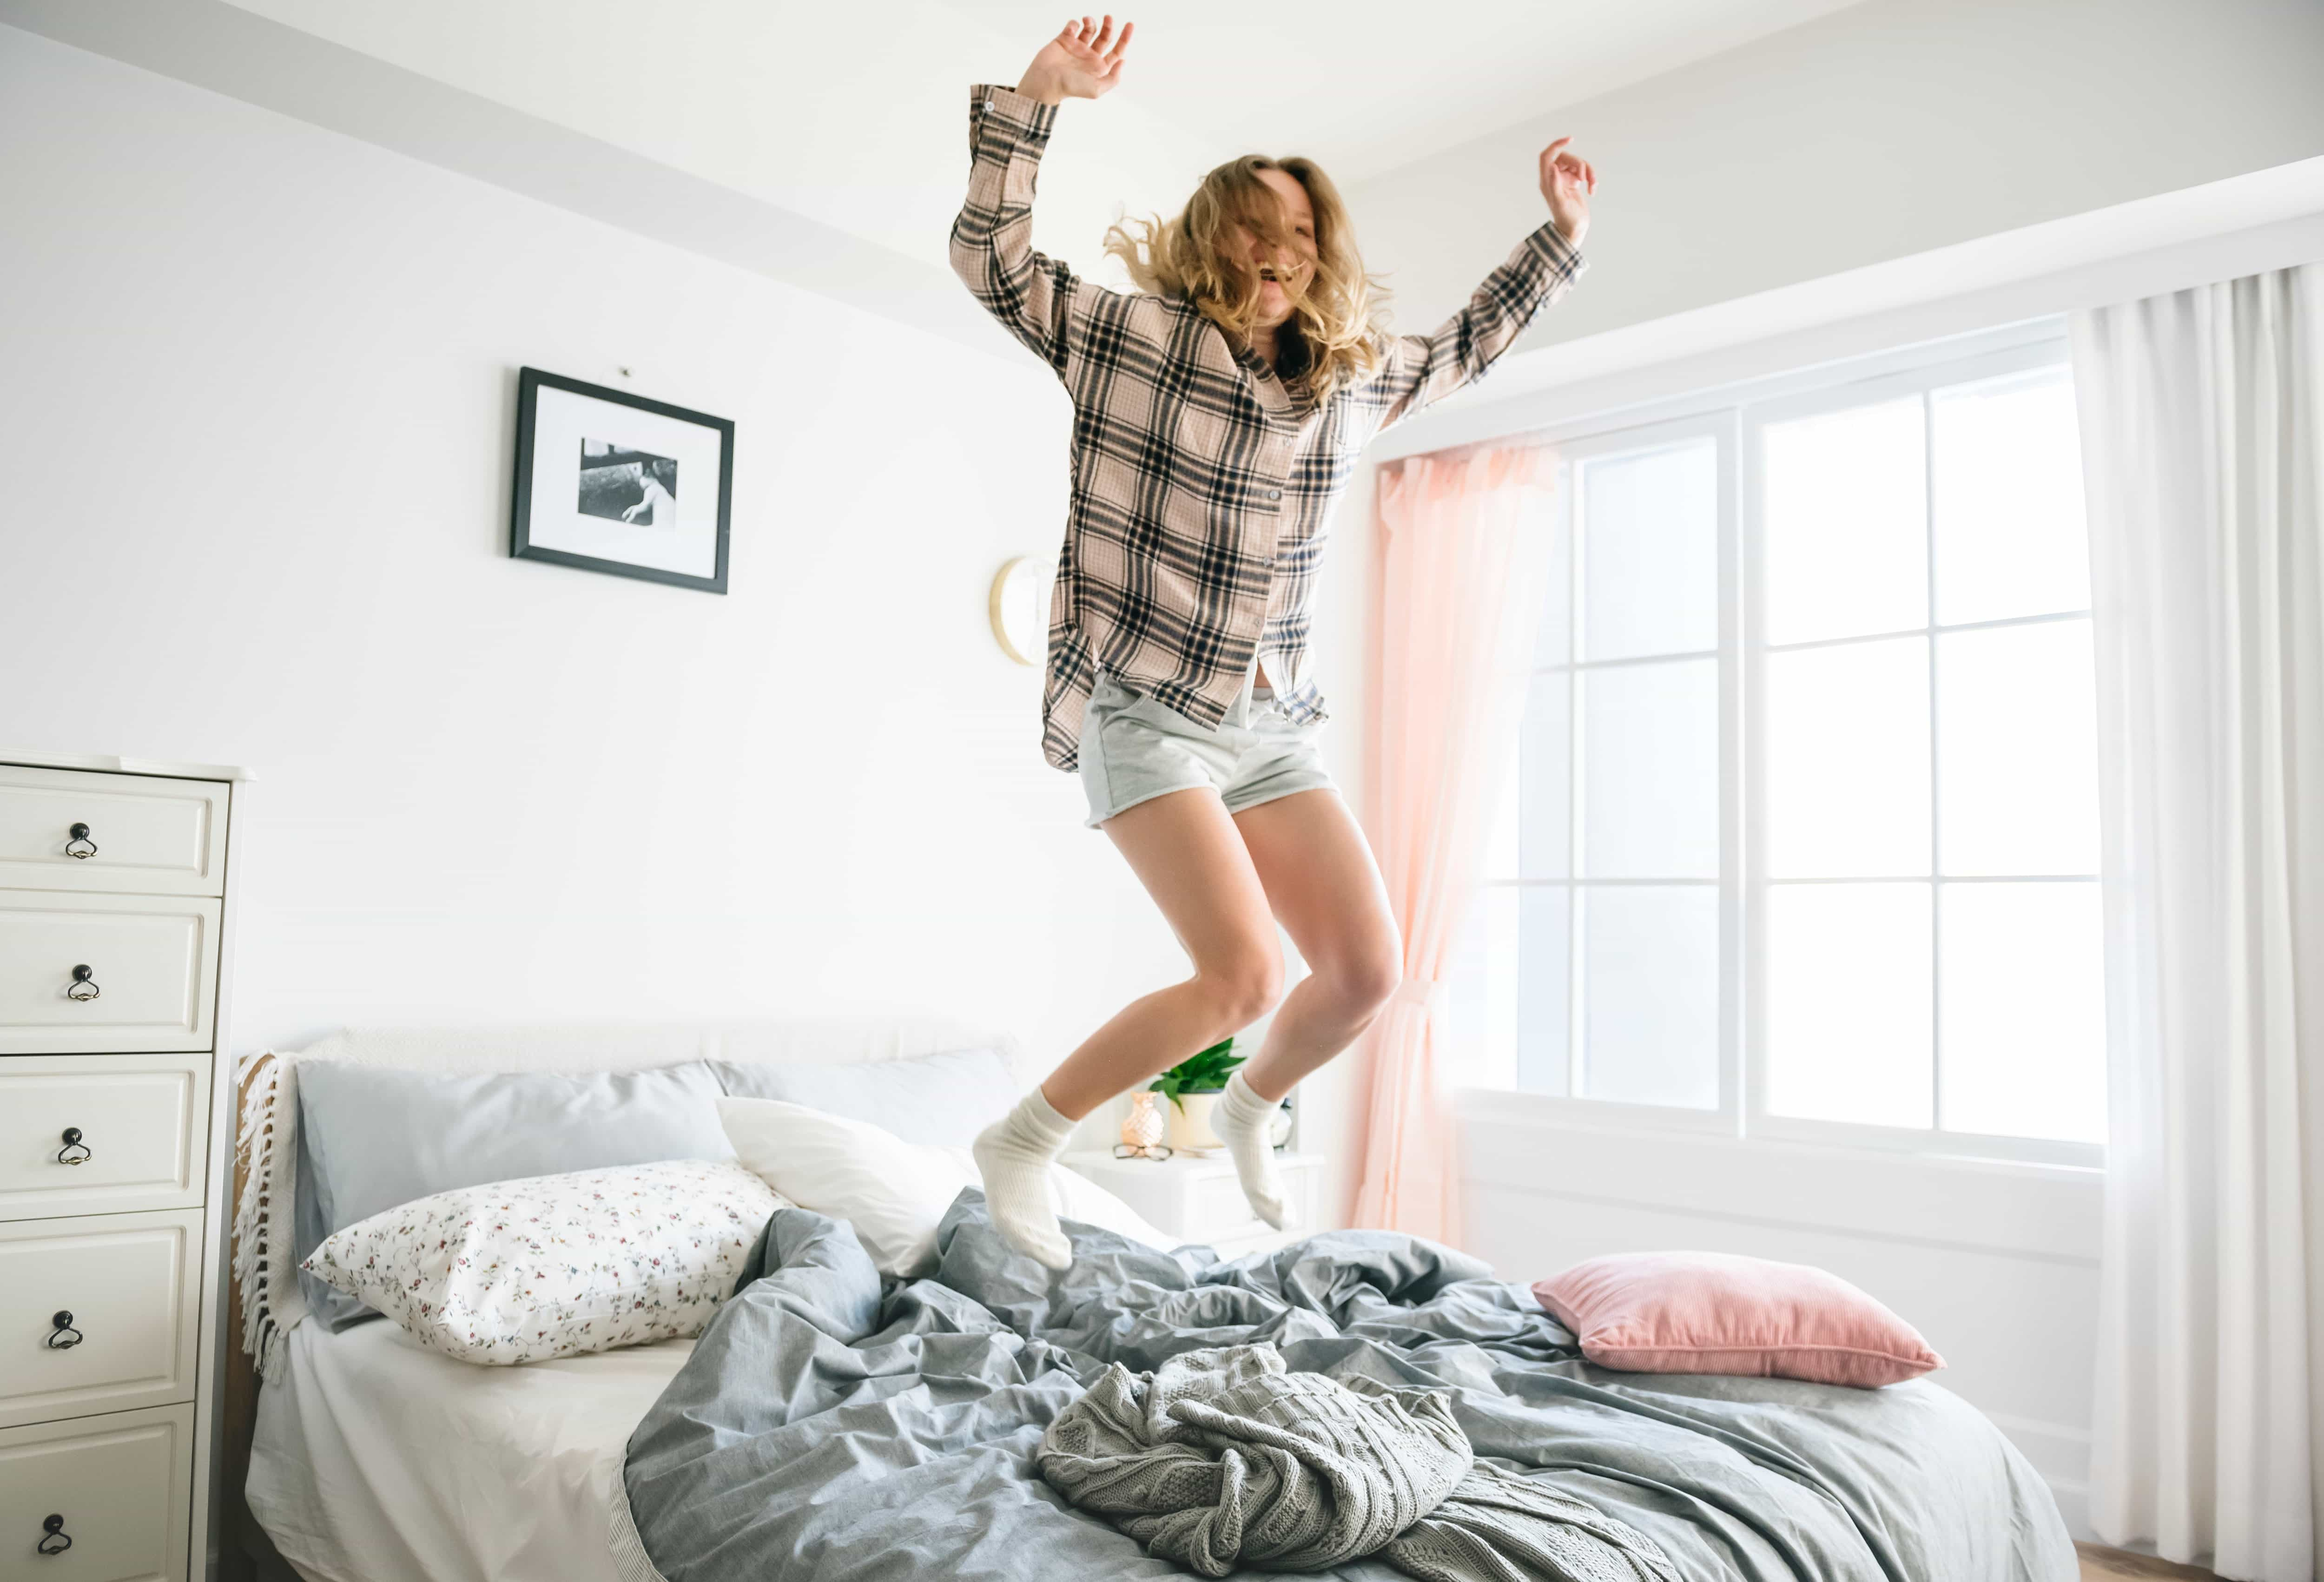 Woman jumping on a bed